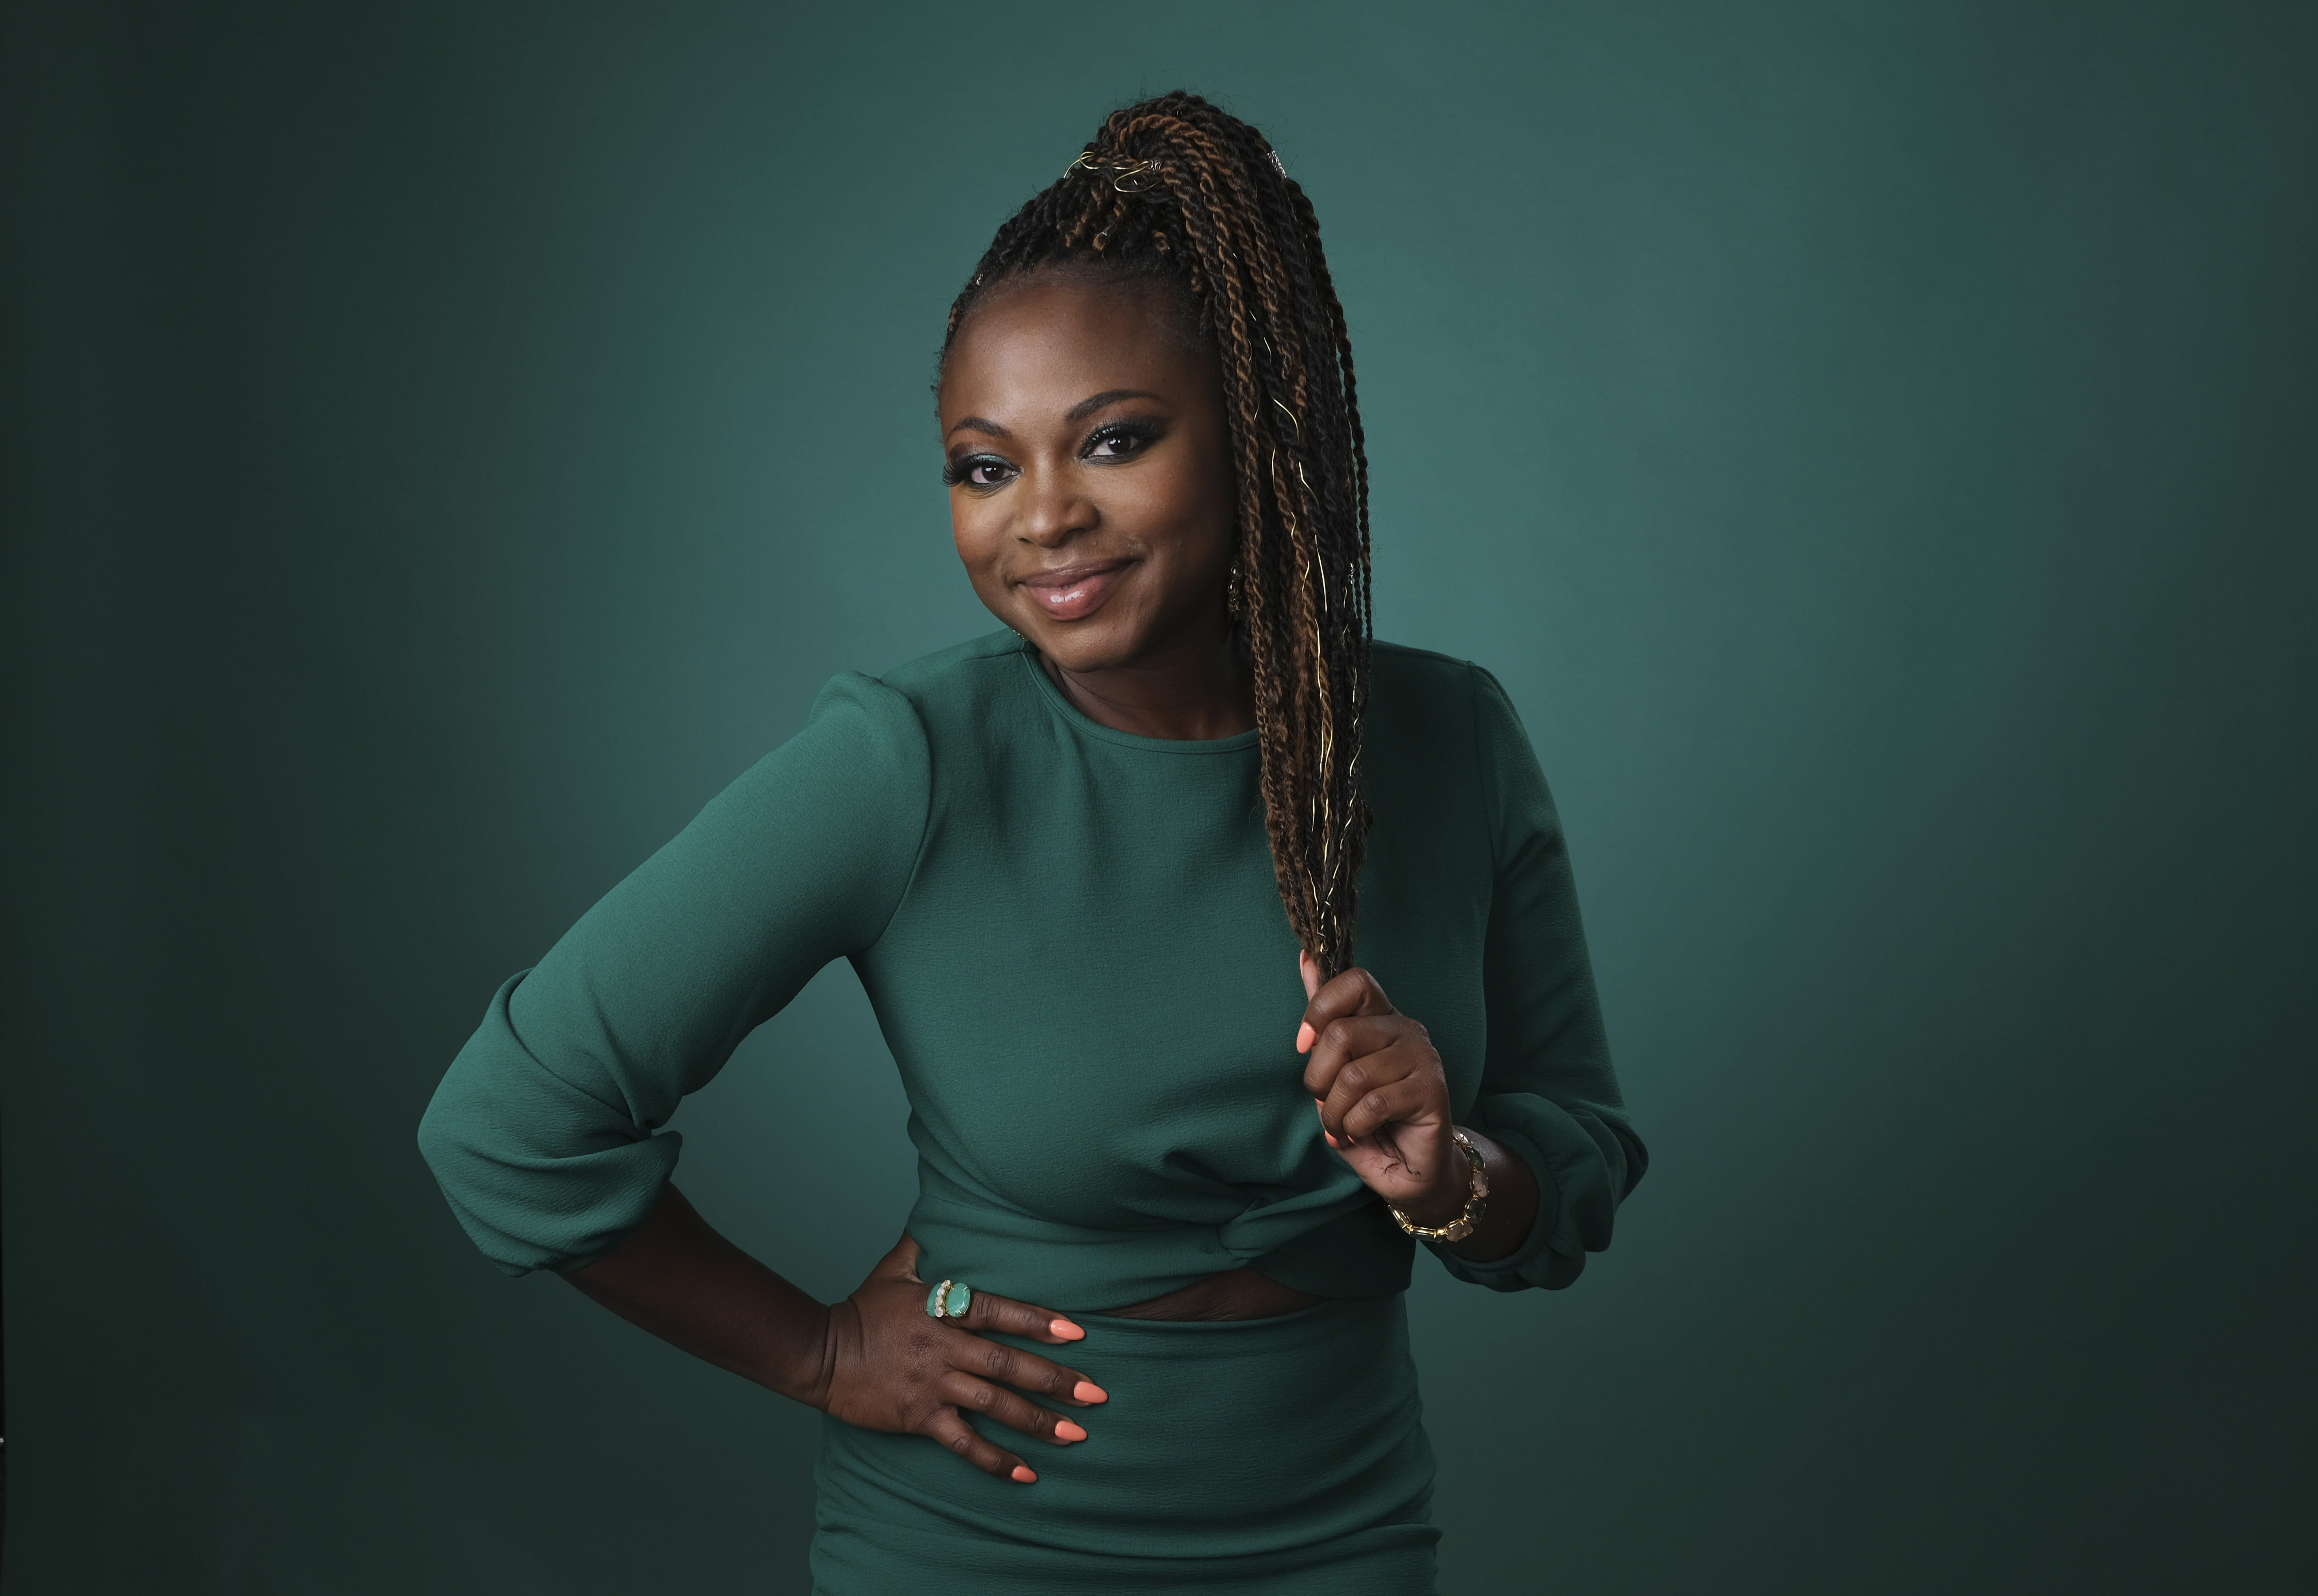 """In this Friday, July 26, 2019, photo, Naturi Naughton poses for a portrait during the Television Critics Association Summer Press Tour at the Beverly Hilton in Beverly Hills, Calif. Naughton appears on """"Power,"""" the Starz series that has turned into a ratings juggernaut and already sparked plans for a spinoffs. The show begins airing its final season on Sunday, Aug. 25. (Photo by Chris Pizzello/Invision/AP)"""